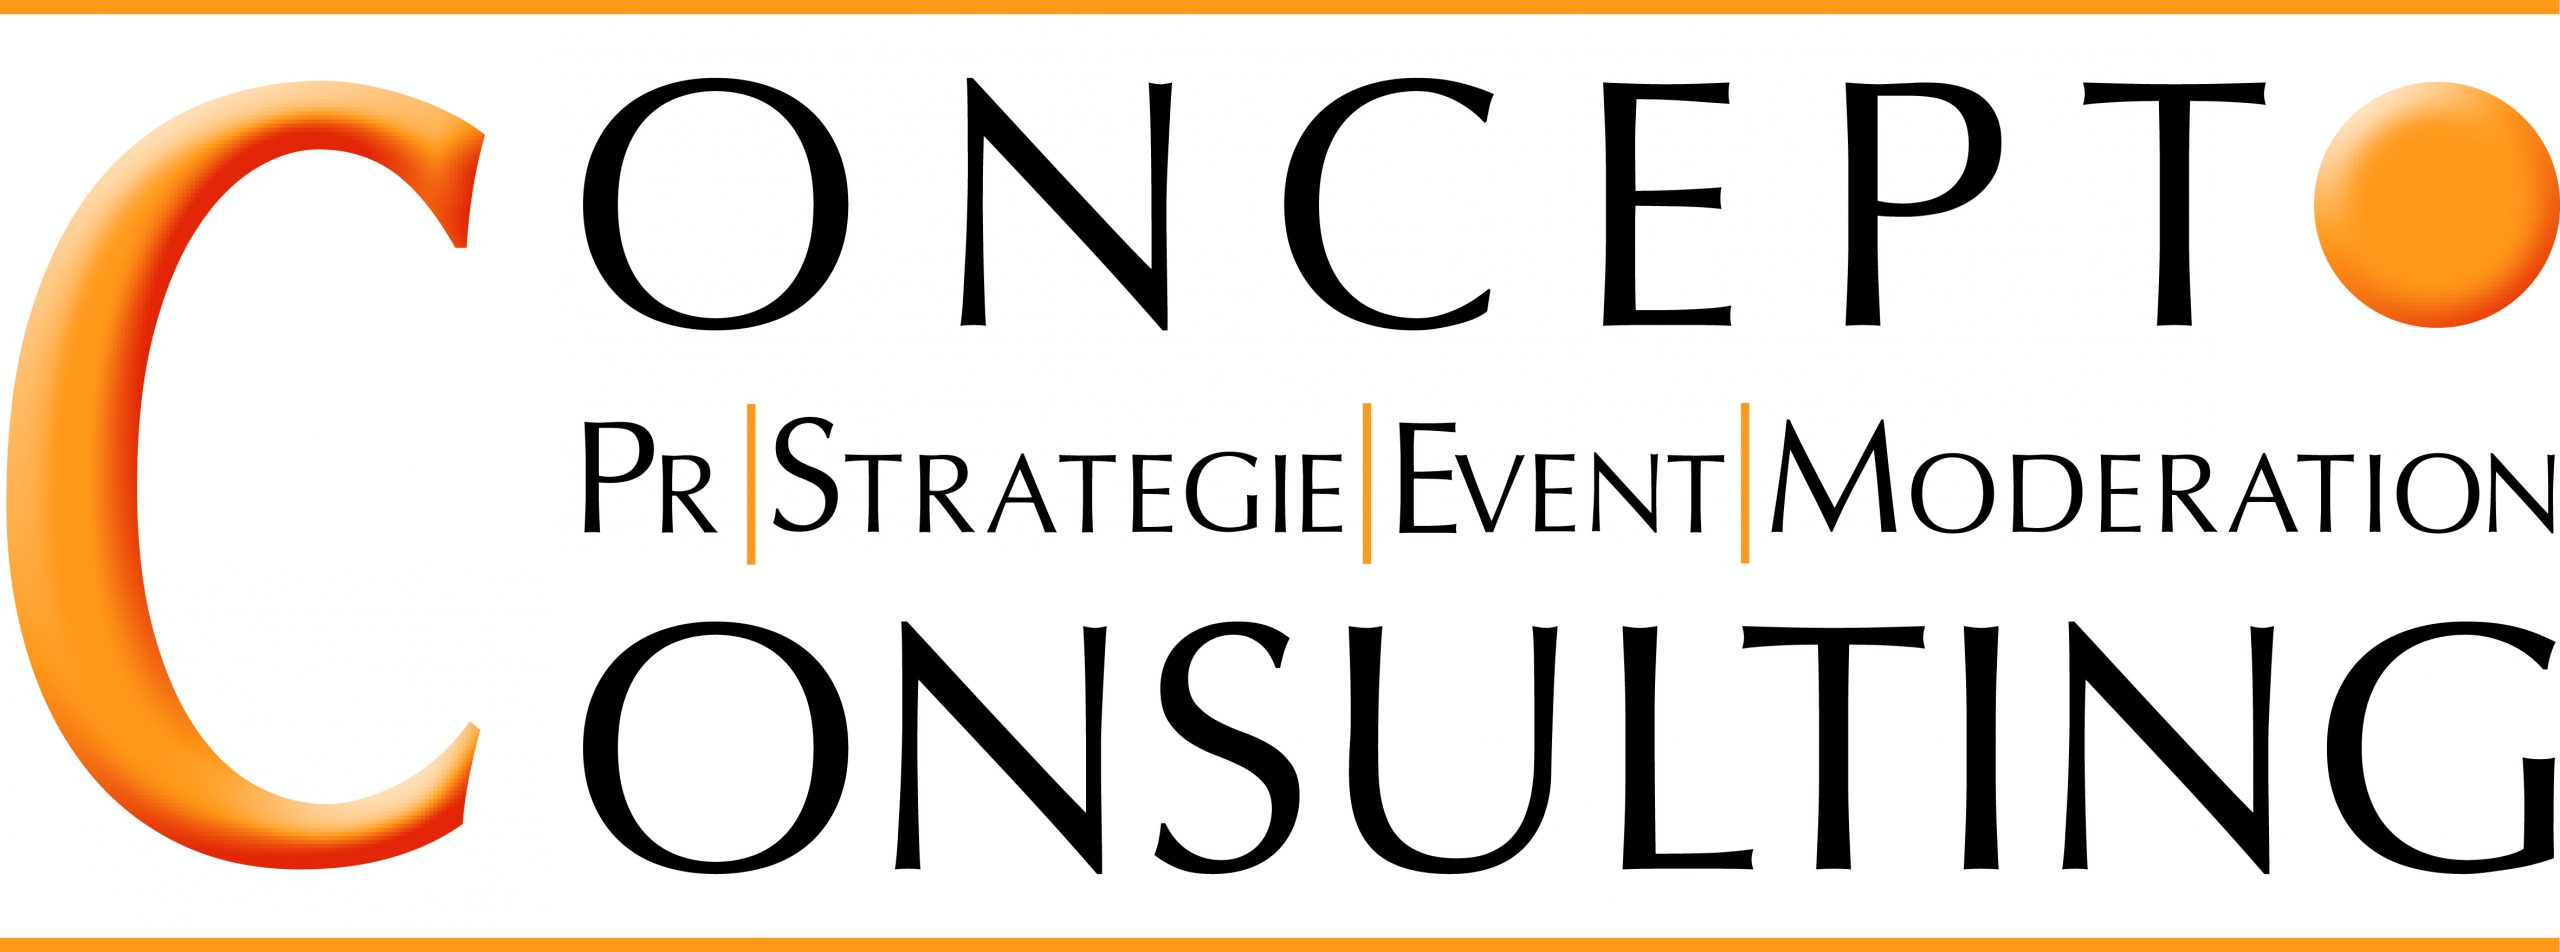 ConceptConsulting